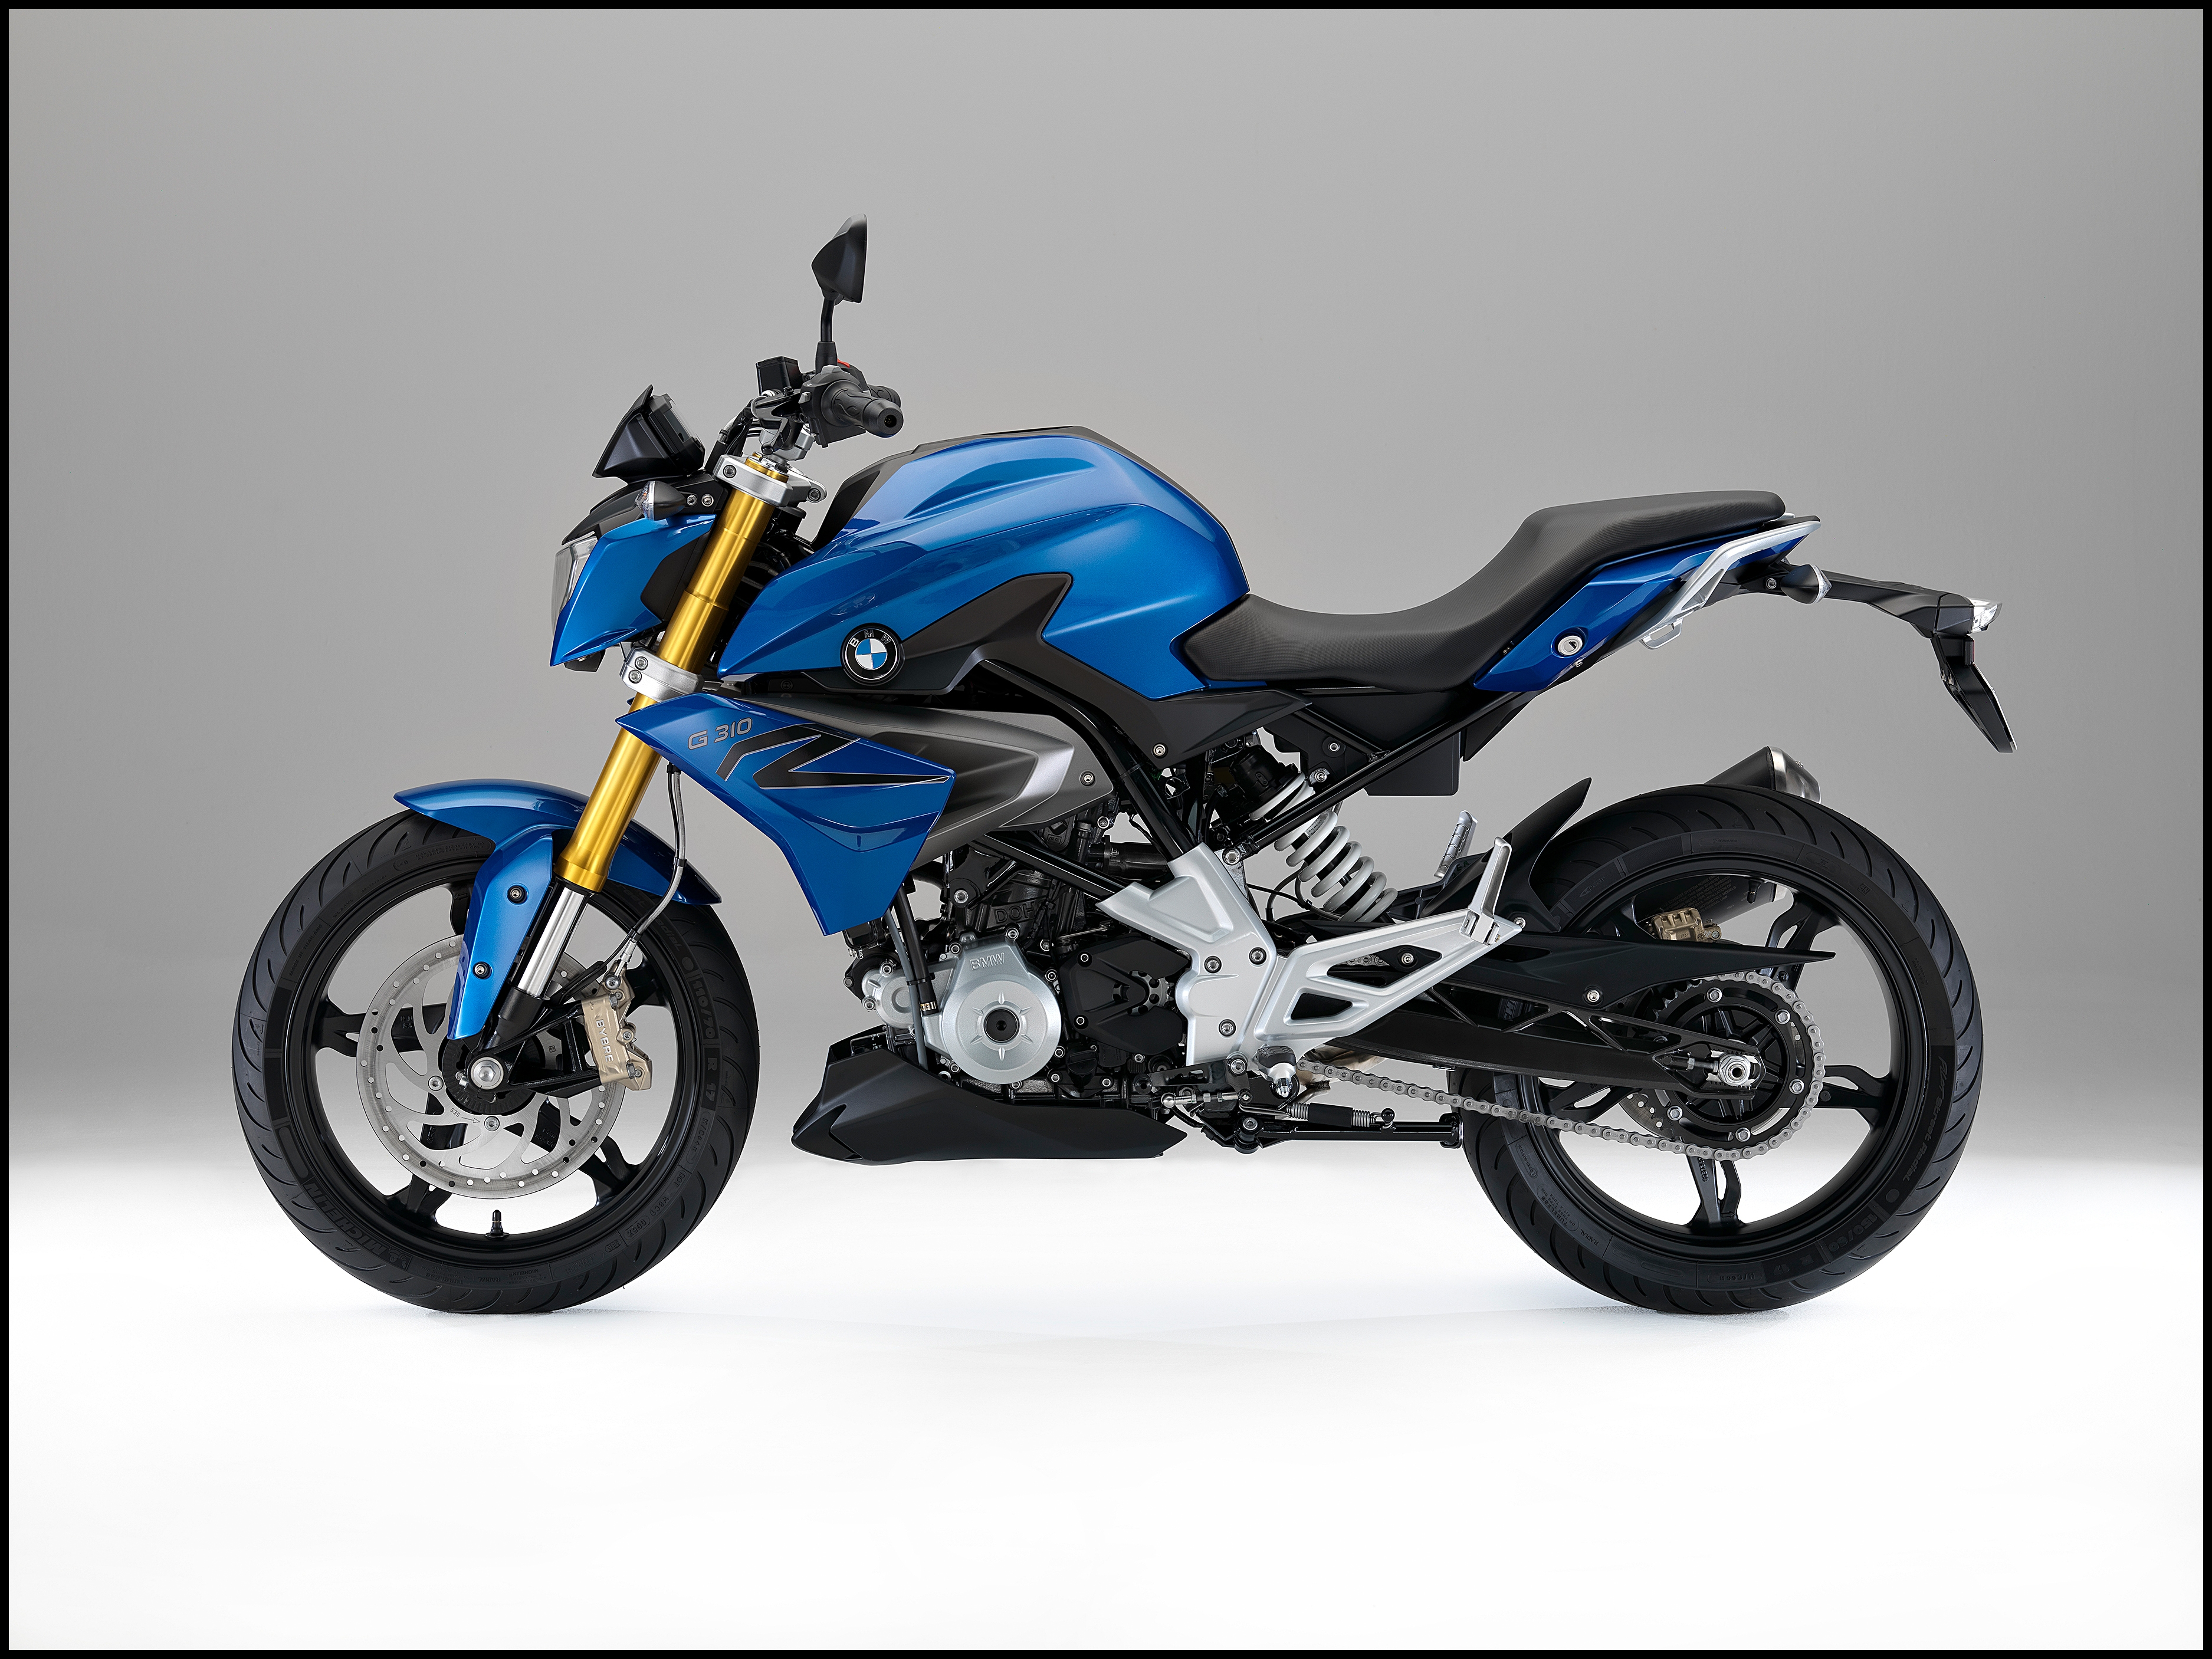 BMW Motorcycle 2015 16 G 310 R Side 3750x2813